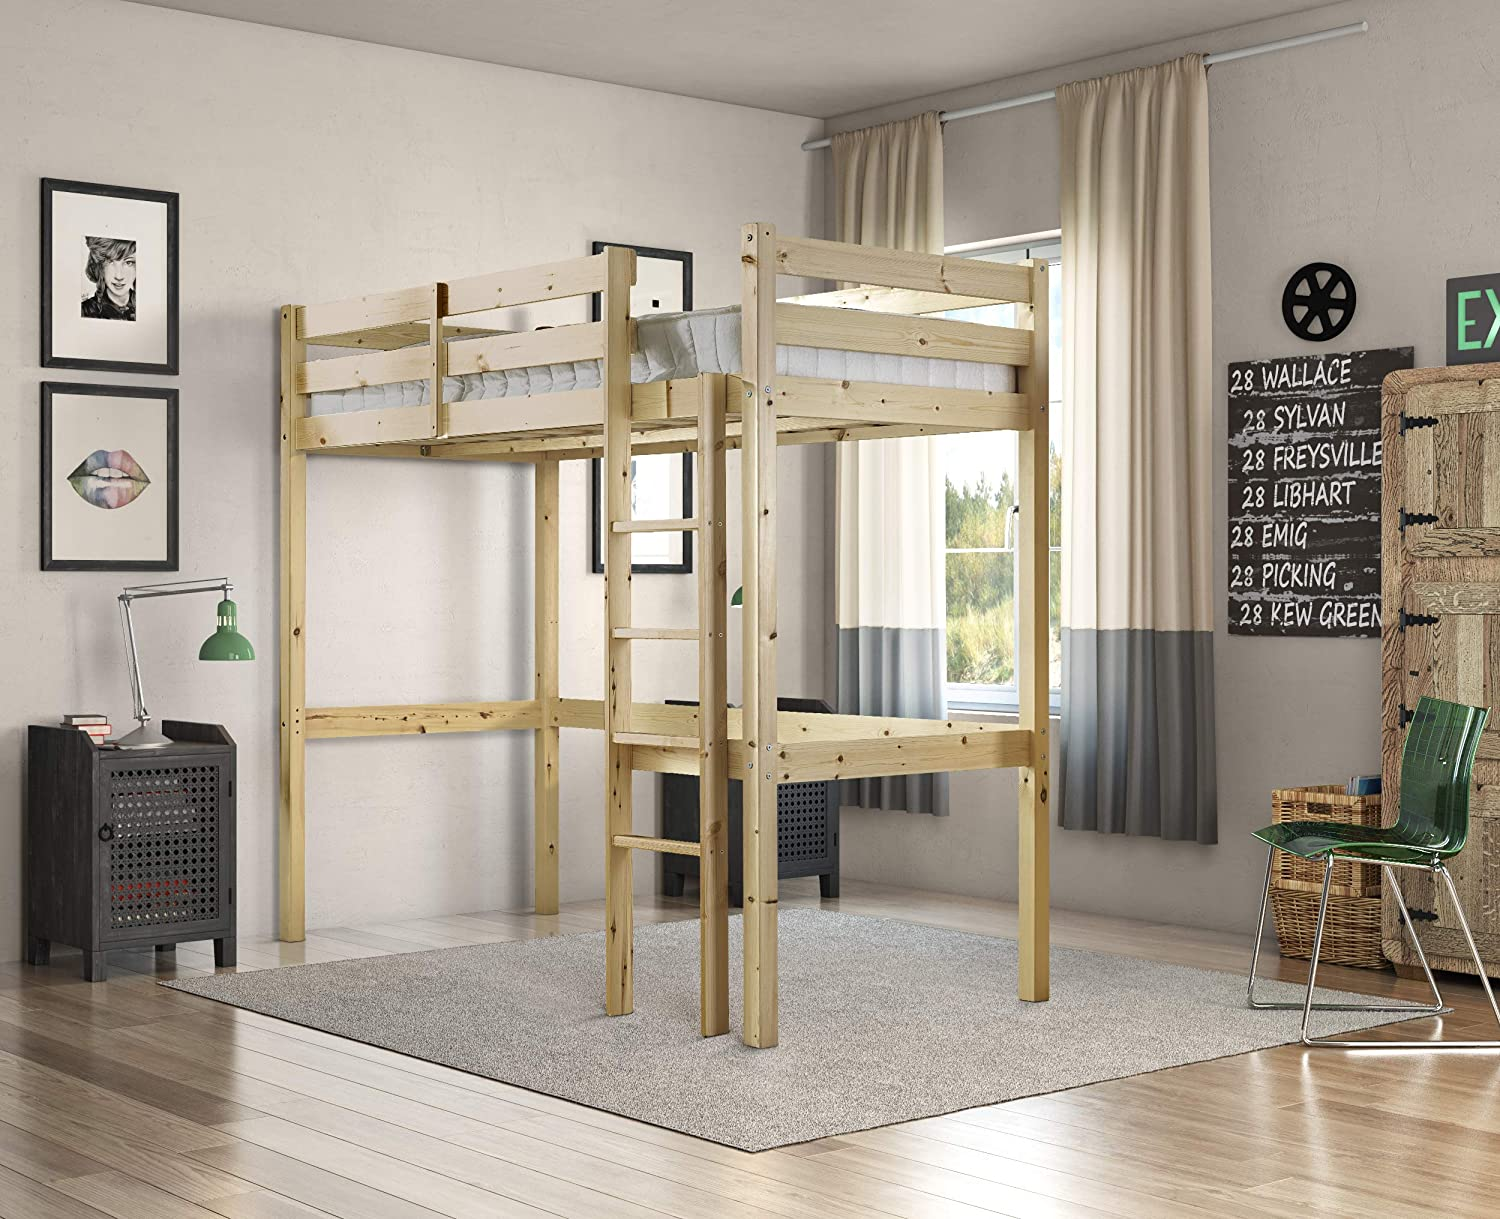 4ft 6 Double Celeste High Sleeper Loft Bunk Bed with Sprung Mattress Strictly Beds and Bunks 15 cm